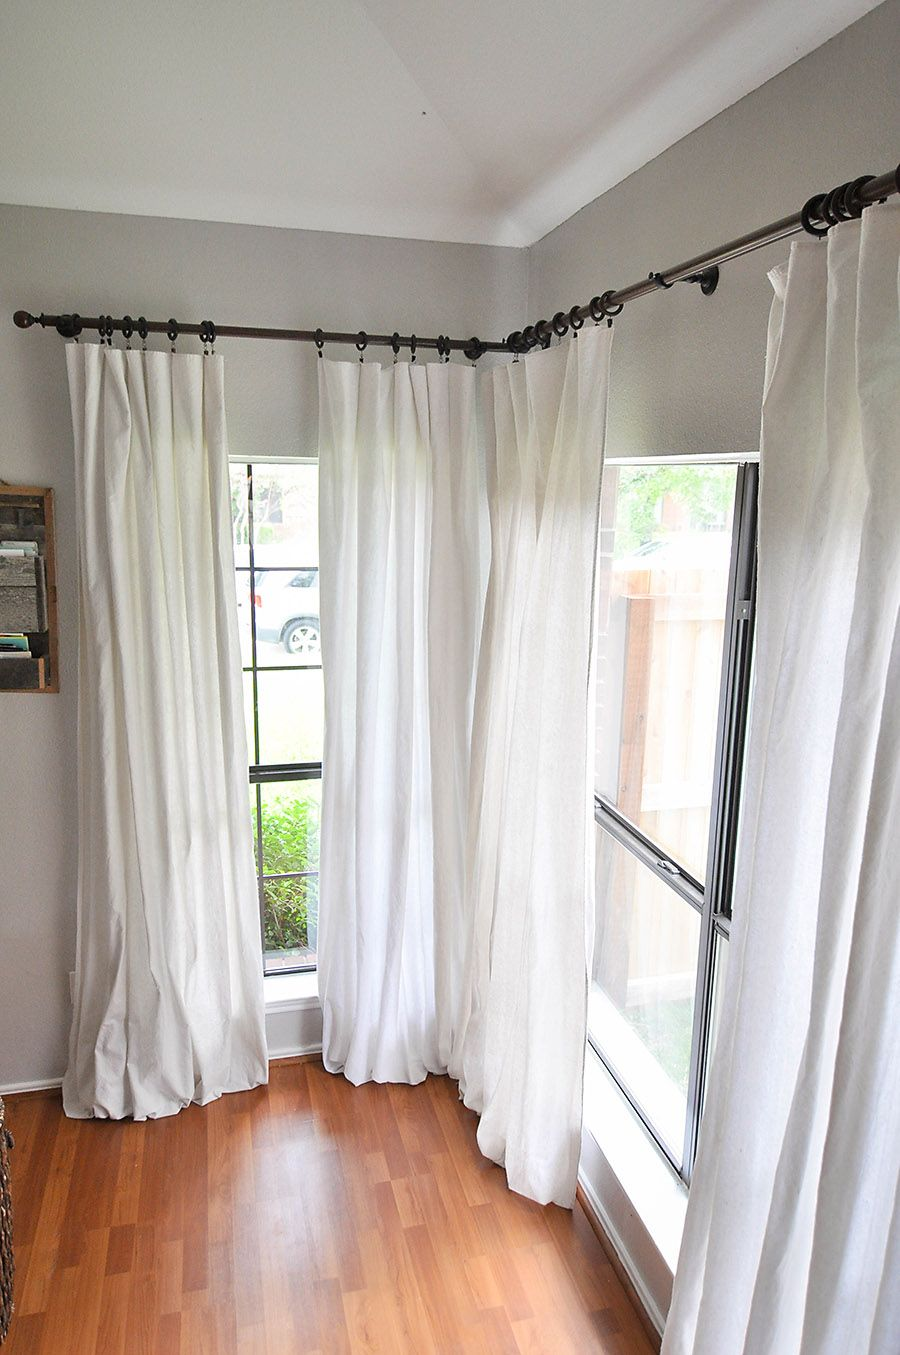 window dressing ideas bathroom window whether youre looking for elegant draperies covered valances or simple swath of fabric we have window treatment ideas that will beautiful windows treatment ideas daily home living